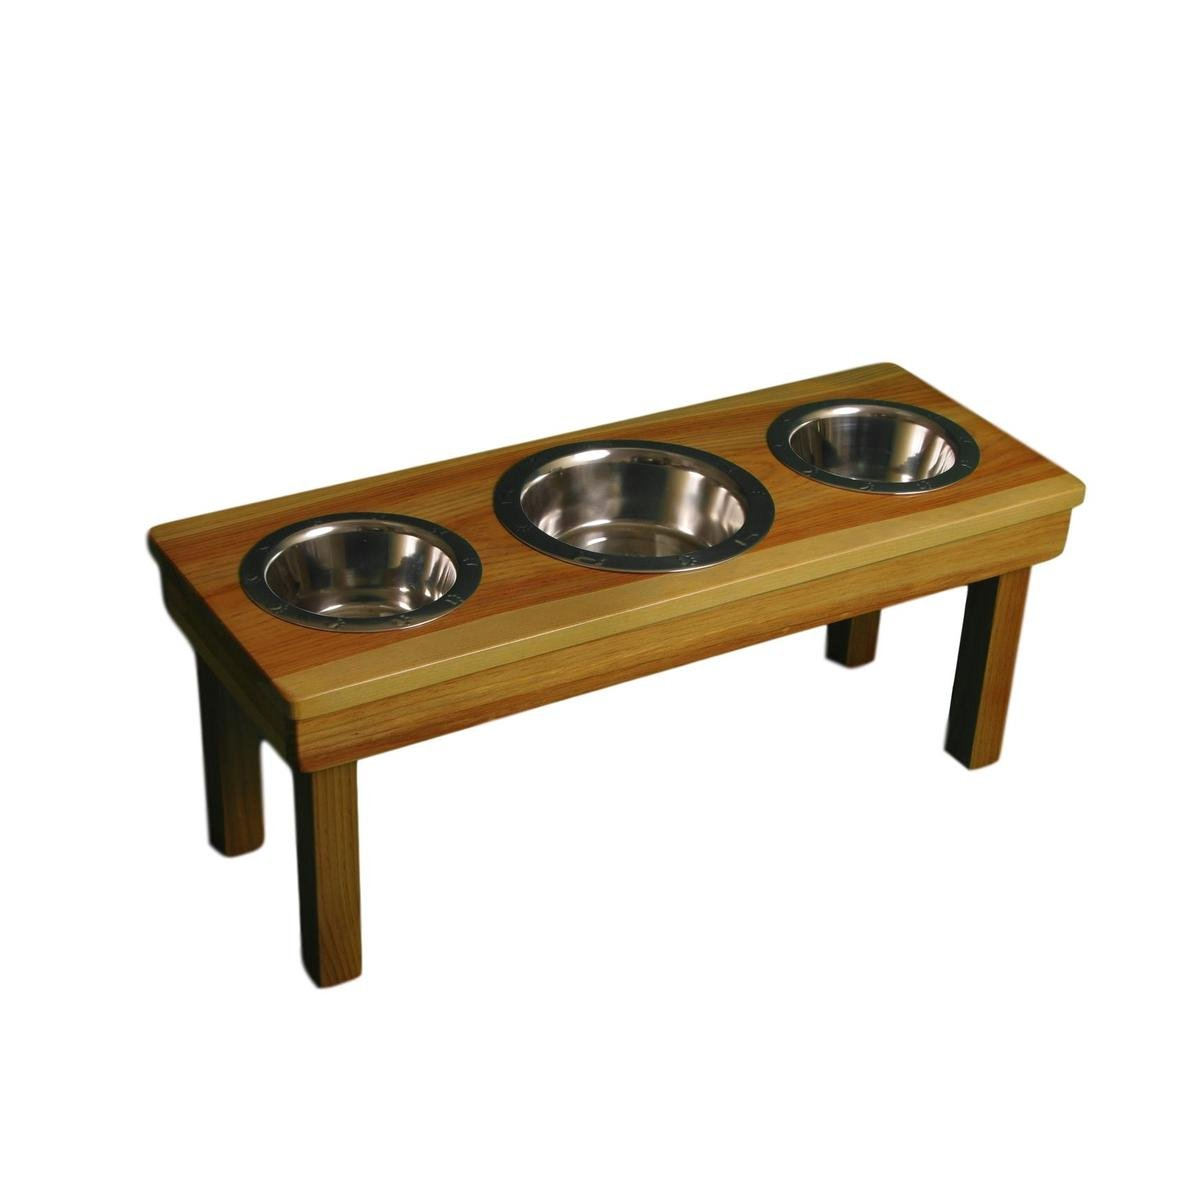 Triple Bowl Medium (12'' tall) Dog Bowl for Dogs from OFTO with 3 stainless steel bowls